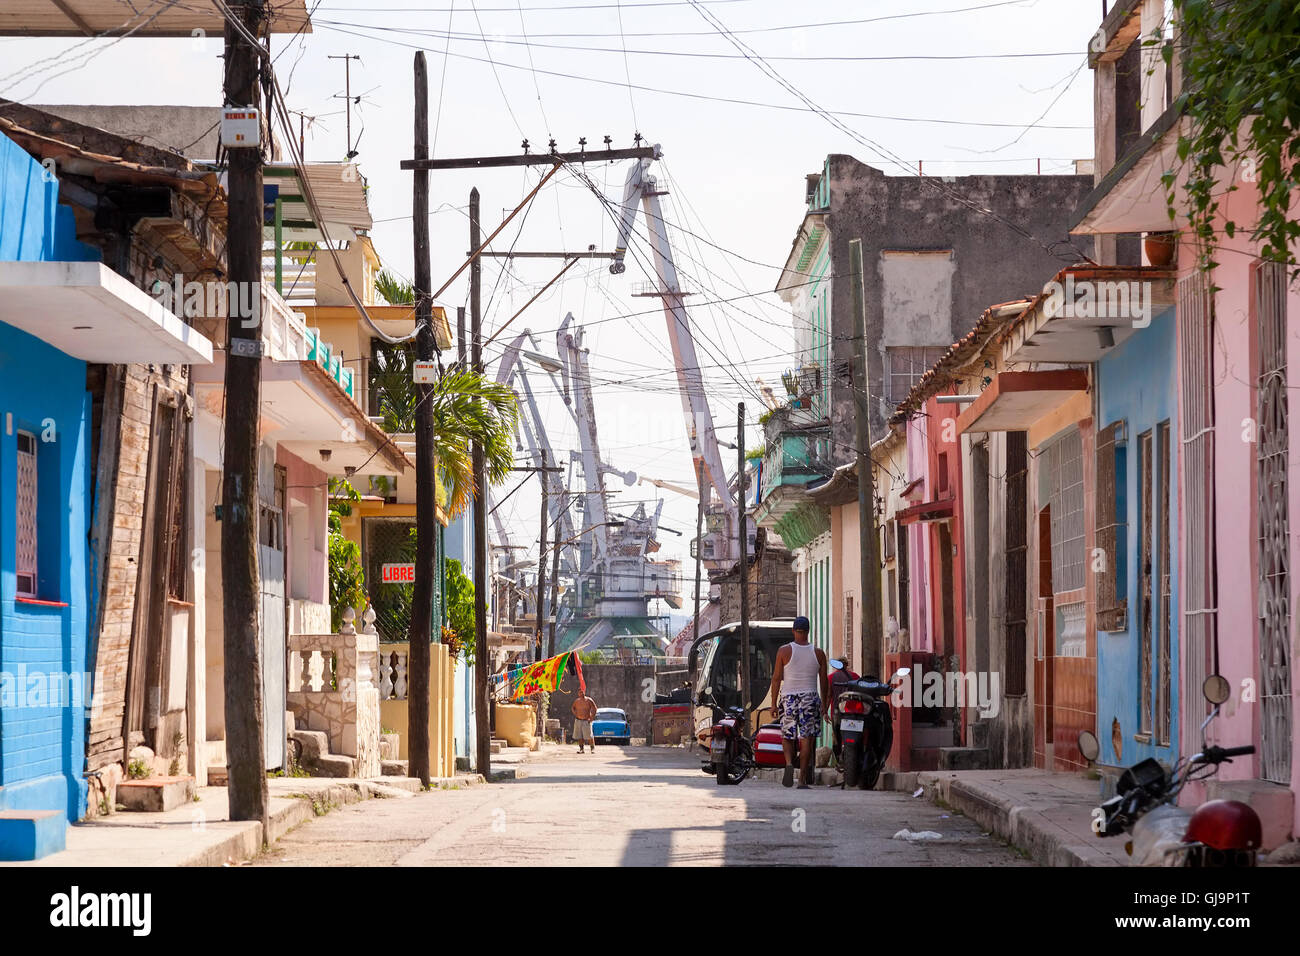 Heavy industry bordering a neighbourhood in the municipality of Regla, Havana, Cuba. - Stock Image